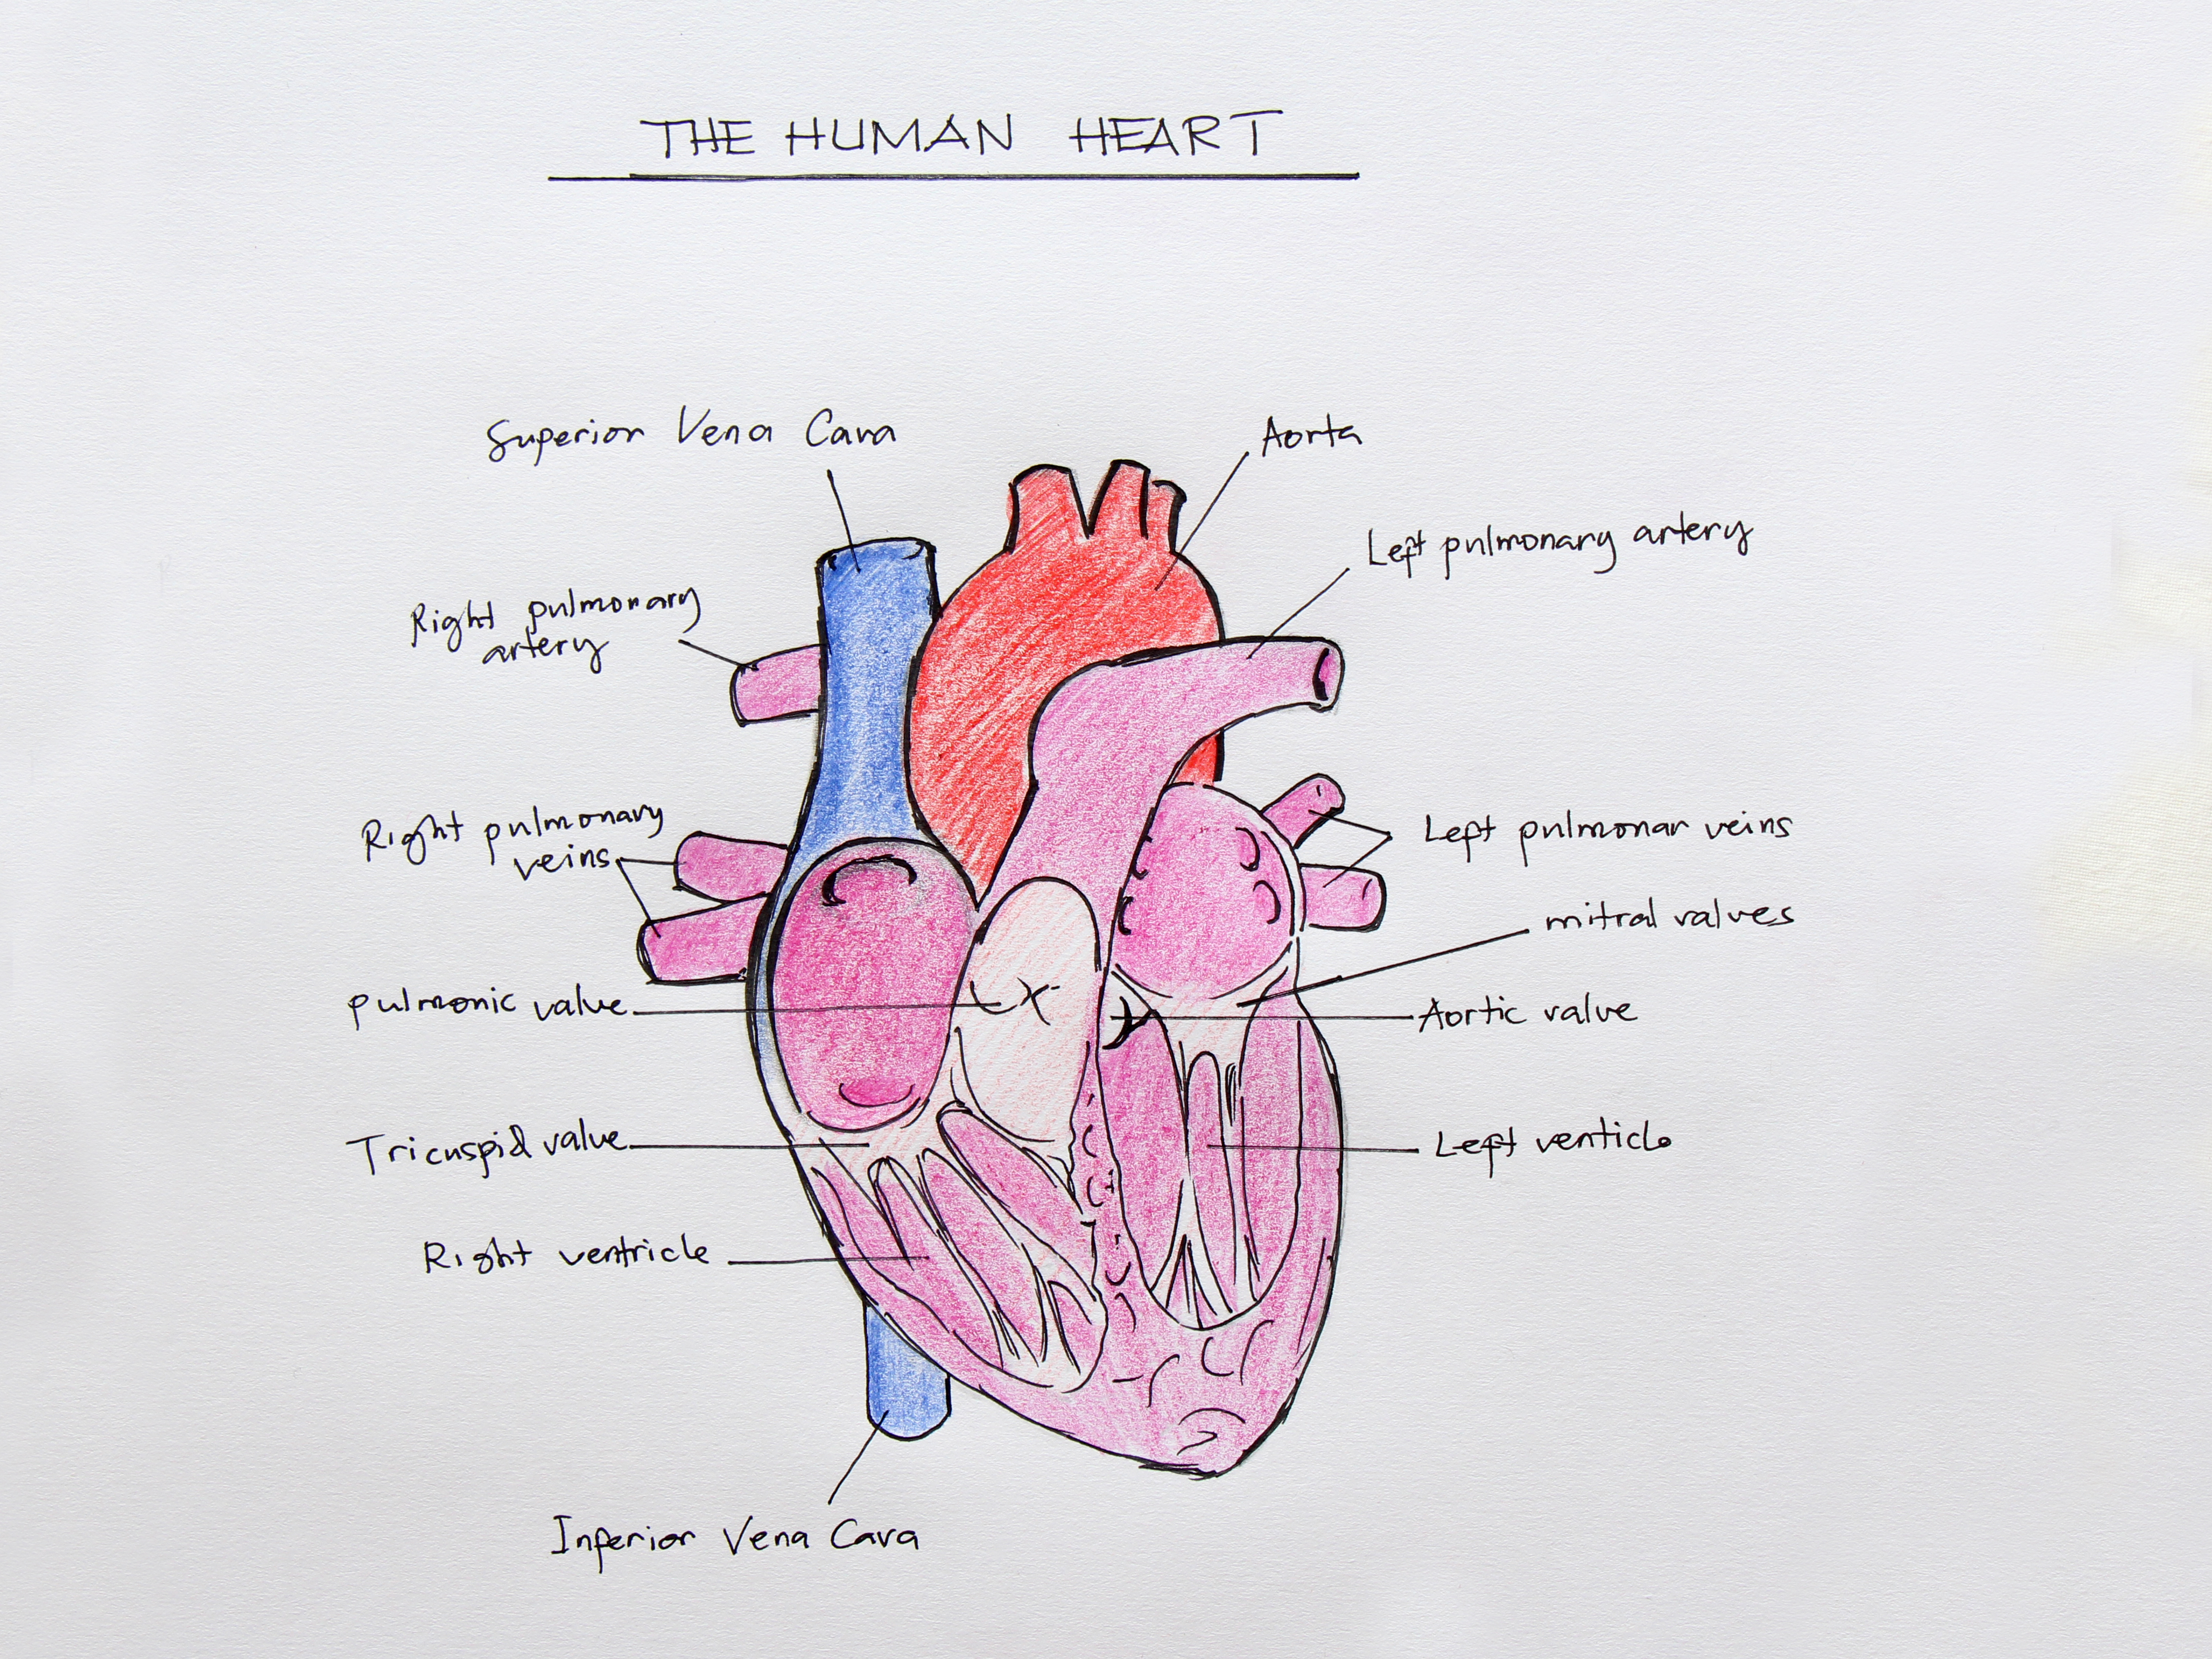 Human Heart Anatomy Drawing at GetDrawings.com | Free for personal ...